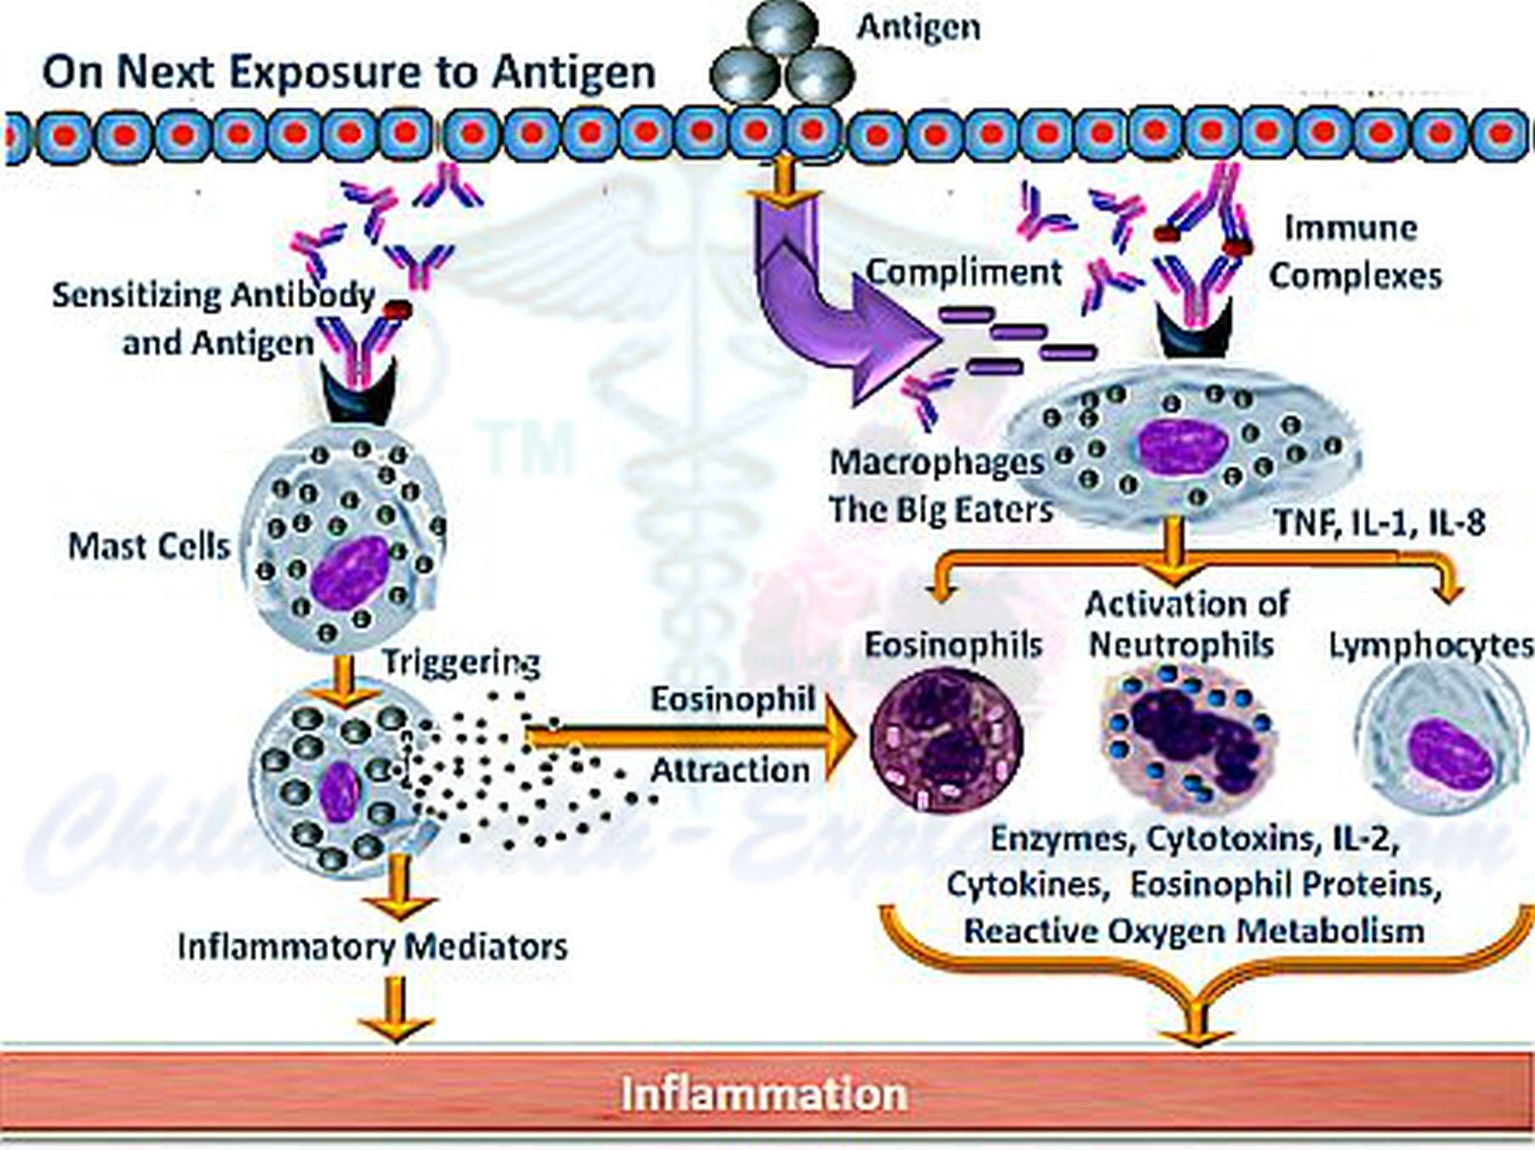 Immune Reaction on Subsequent Exposure to Antigen